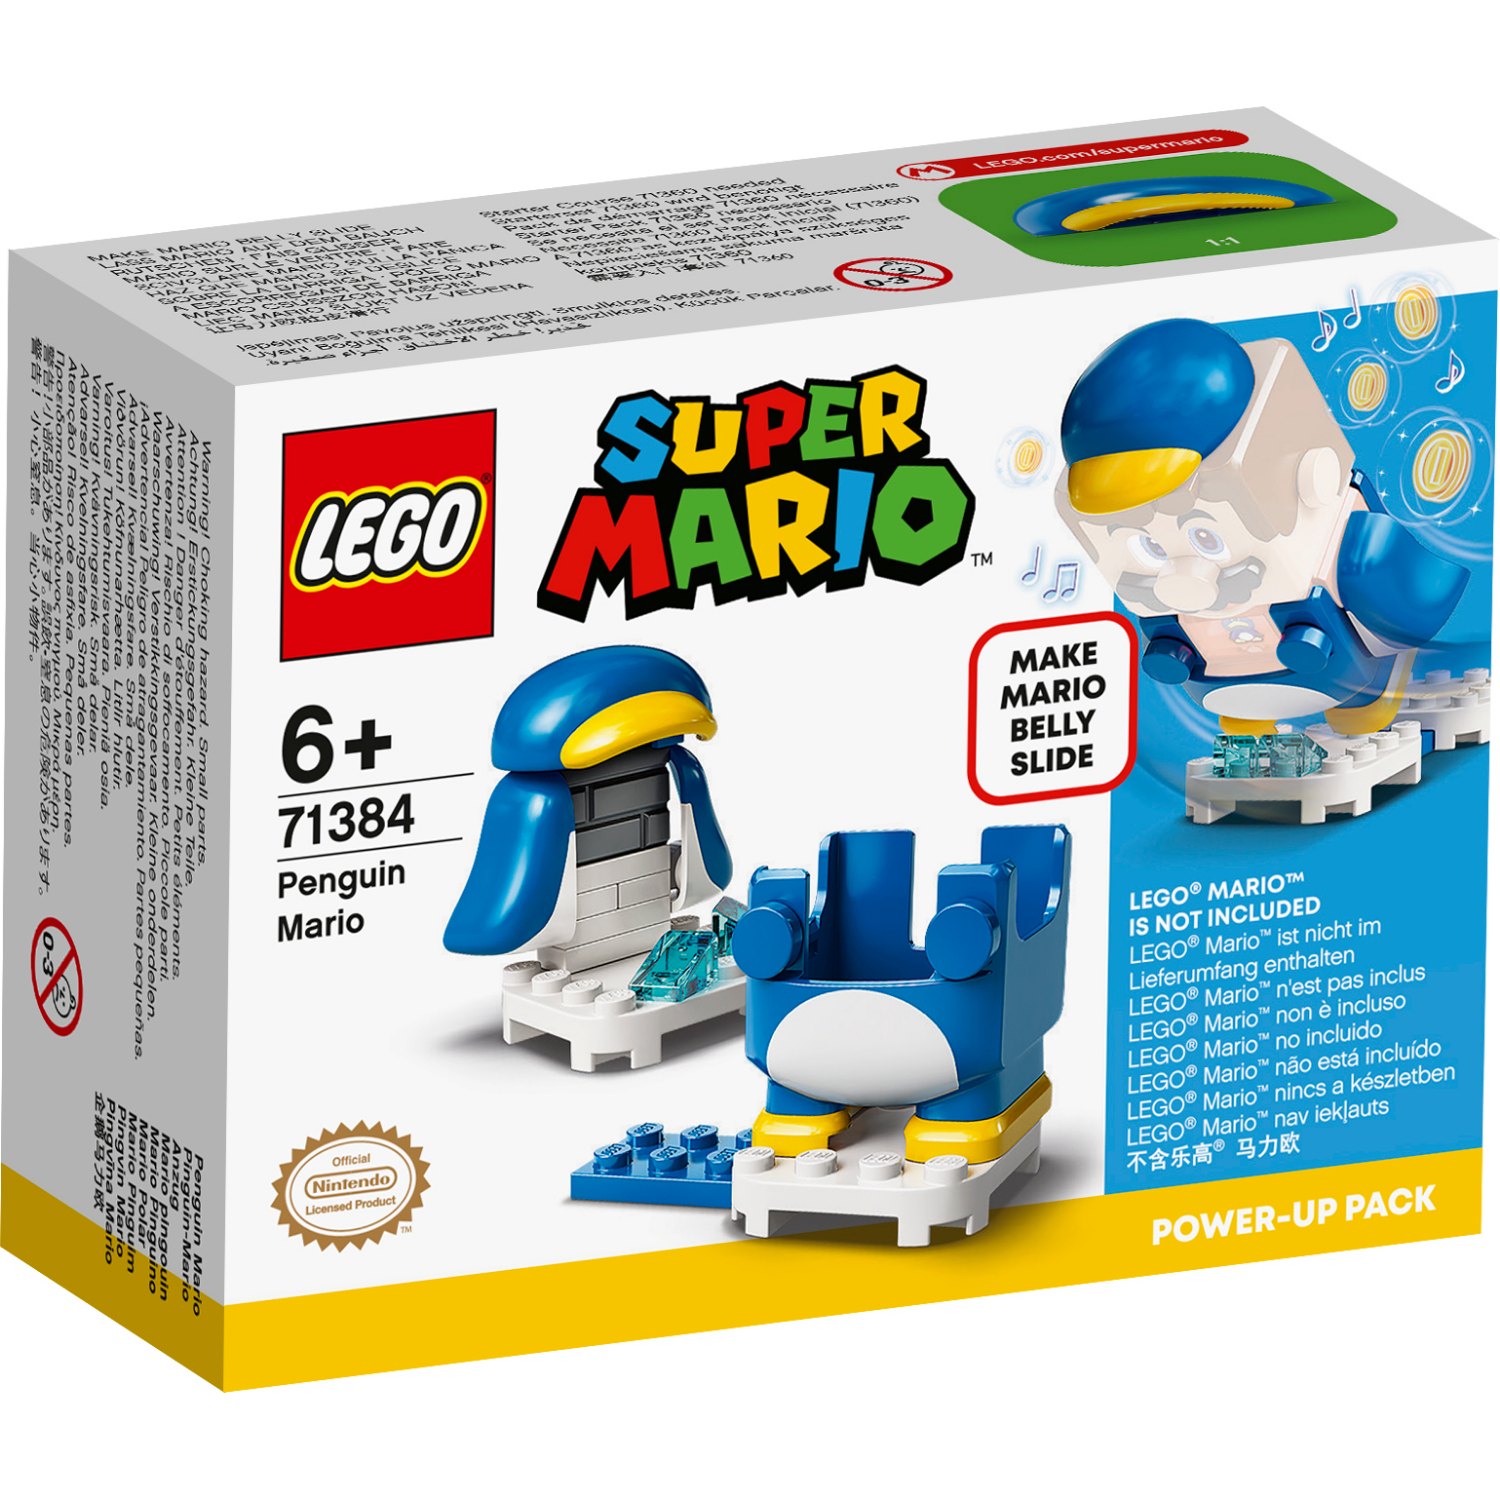 LEGO Super Mario 71384 Power Uppakket Pinguïn Mar